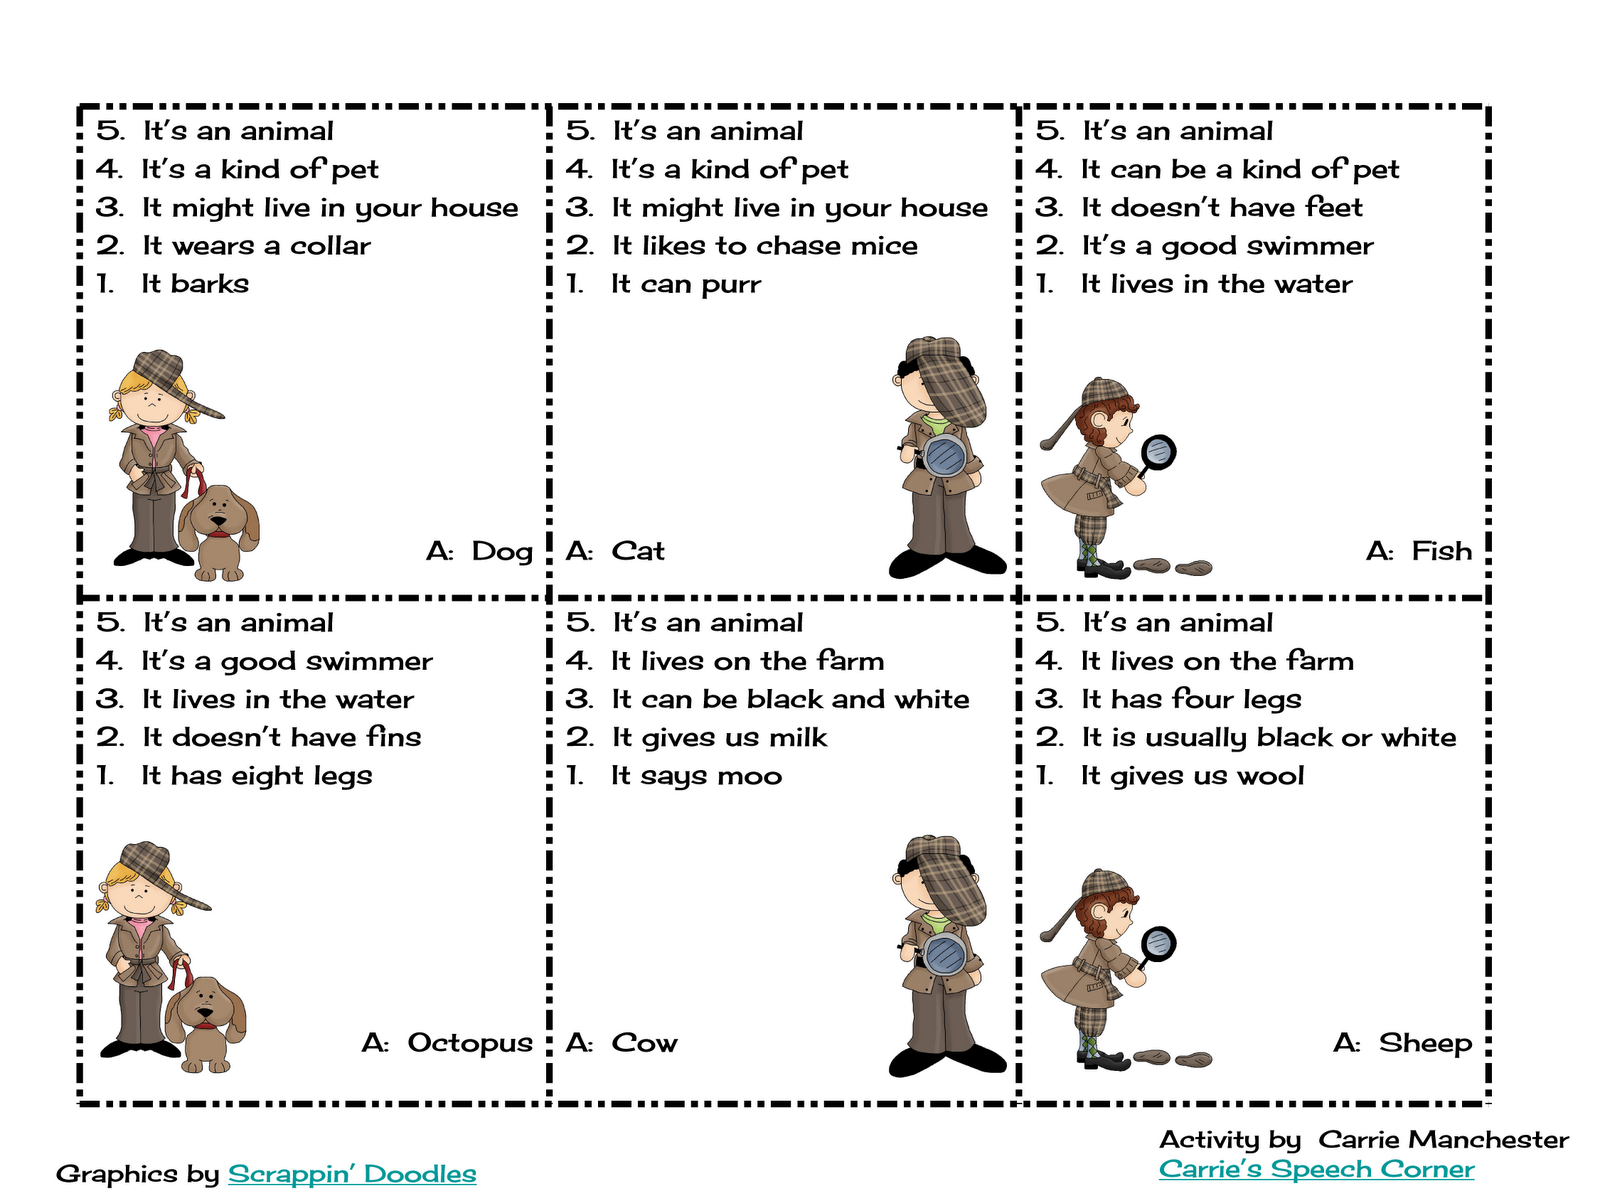 Blank Clue Game Sheets Original clue game clipart - clipart kid